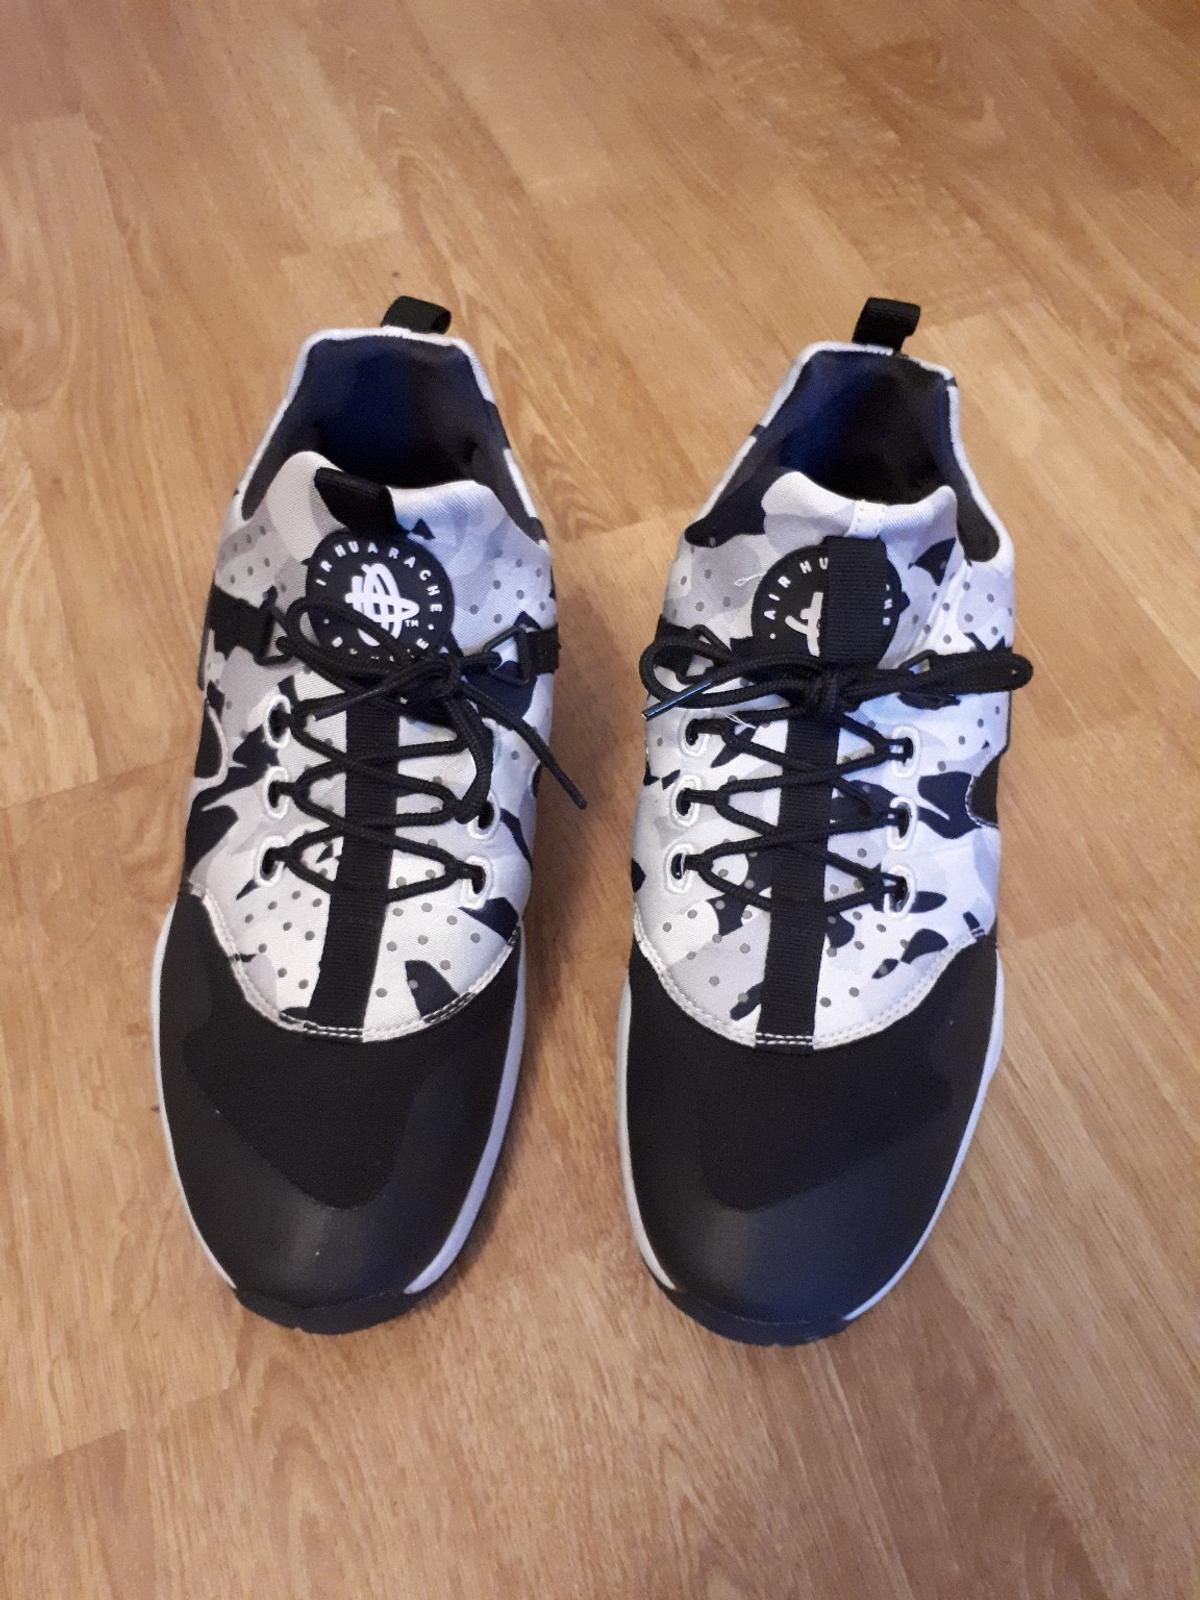 3870c805ee1ab Nike Air Huarache camo in 20359 St. Pauli for €60.00 for sale - Shpock